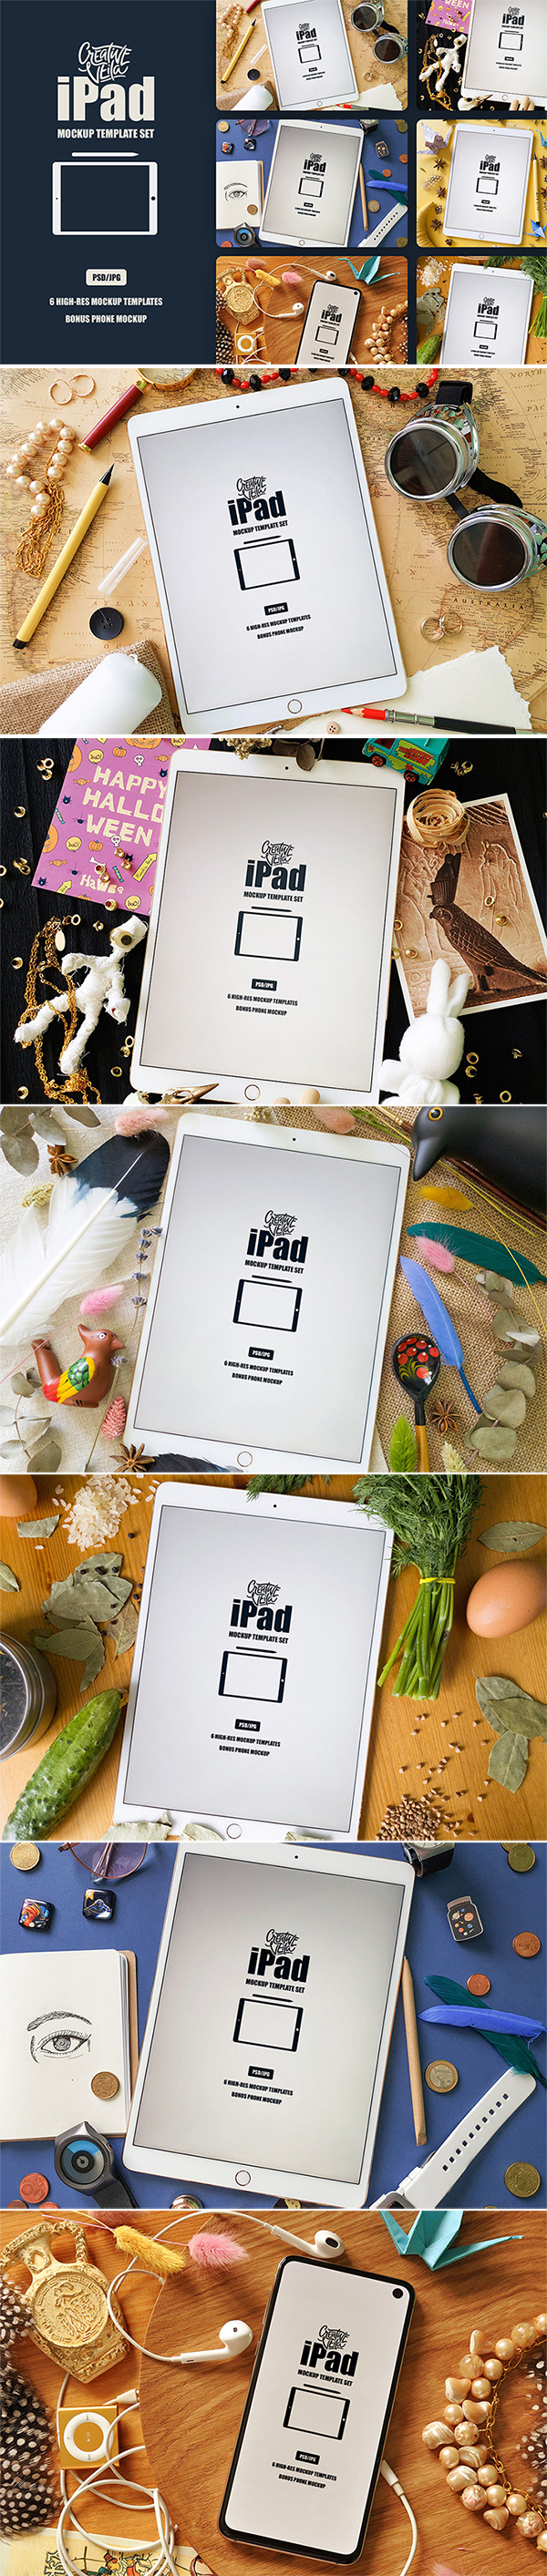 Free Download Awesome High Resolution iPad Mockup Templates